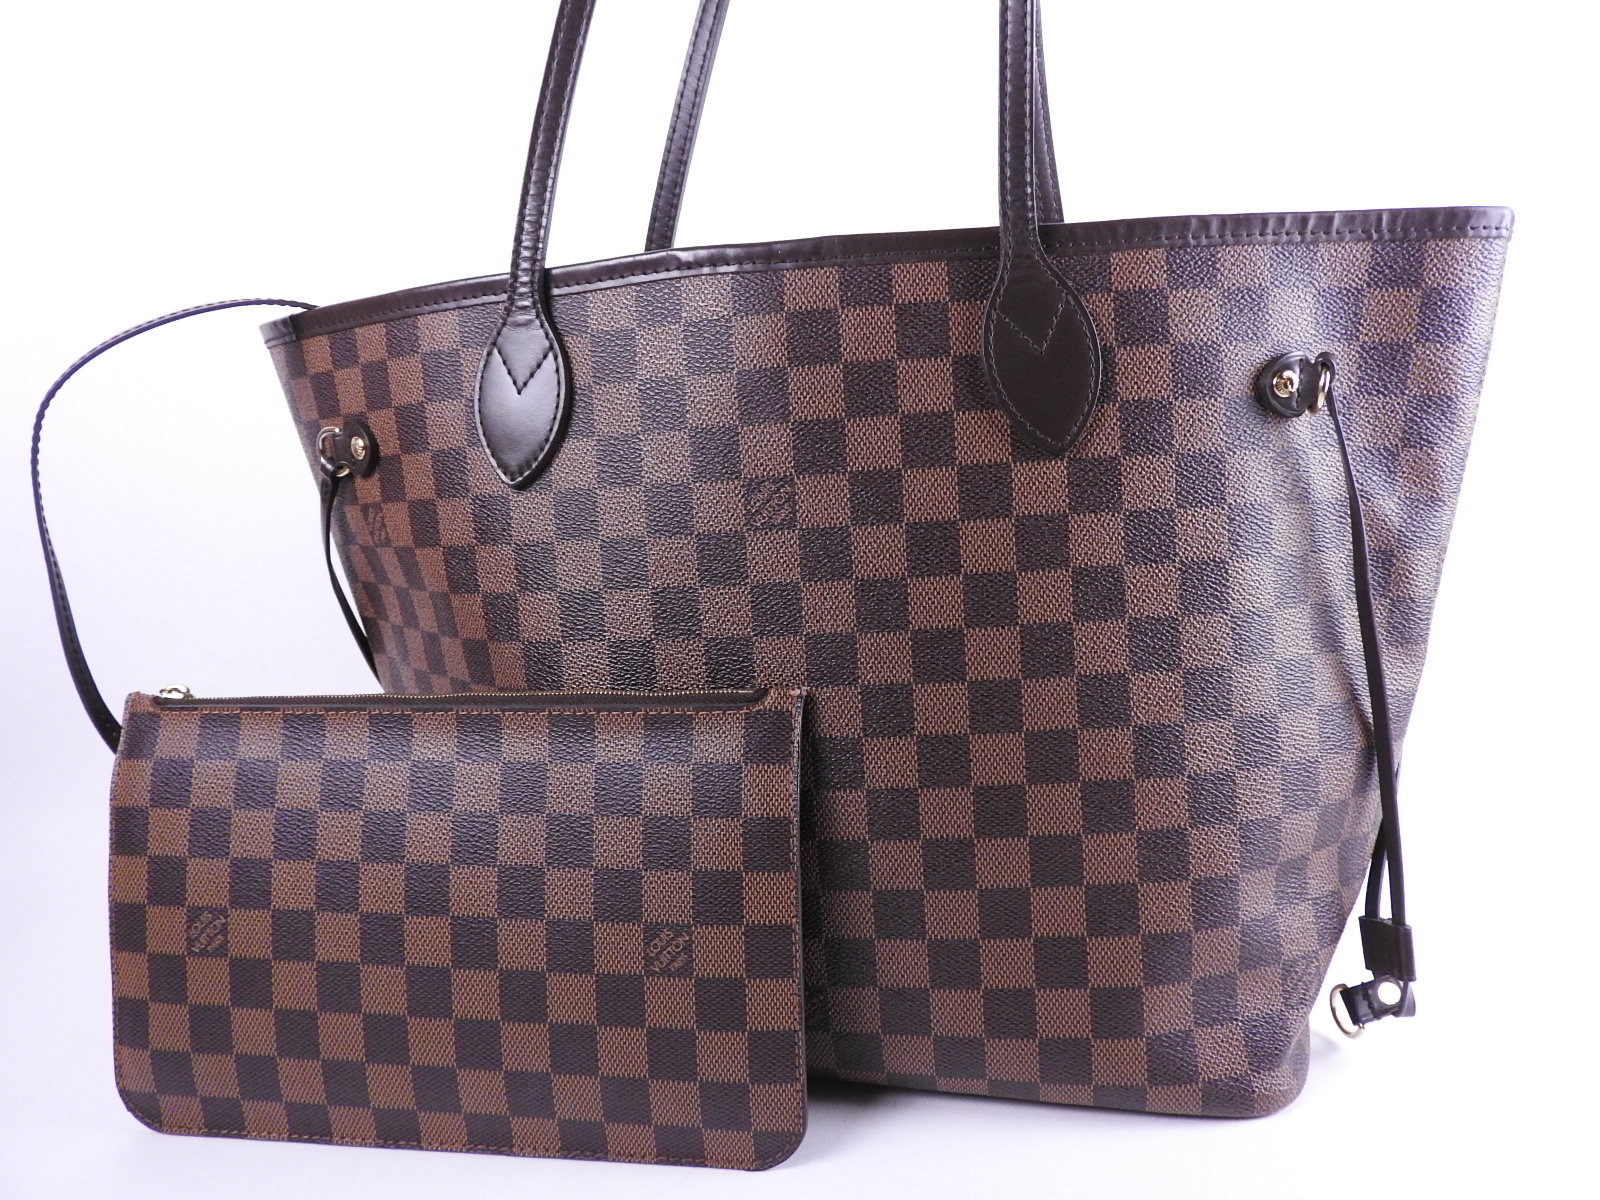 90b2a55759eb Auth LOUIS VUITTON Neverfull MM Damier Ebene Shoulder Tote Bag With Pouch  N41358 A-8602